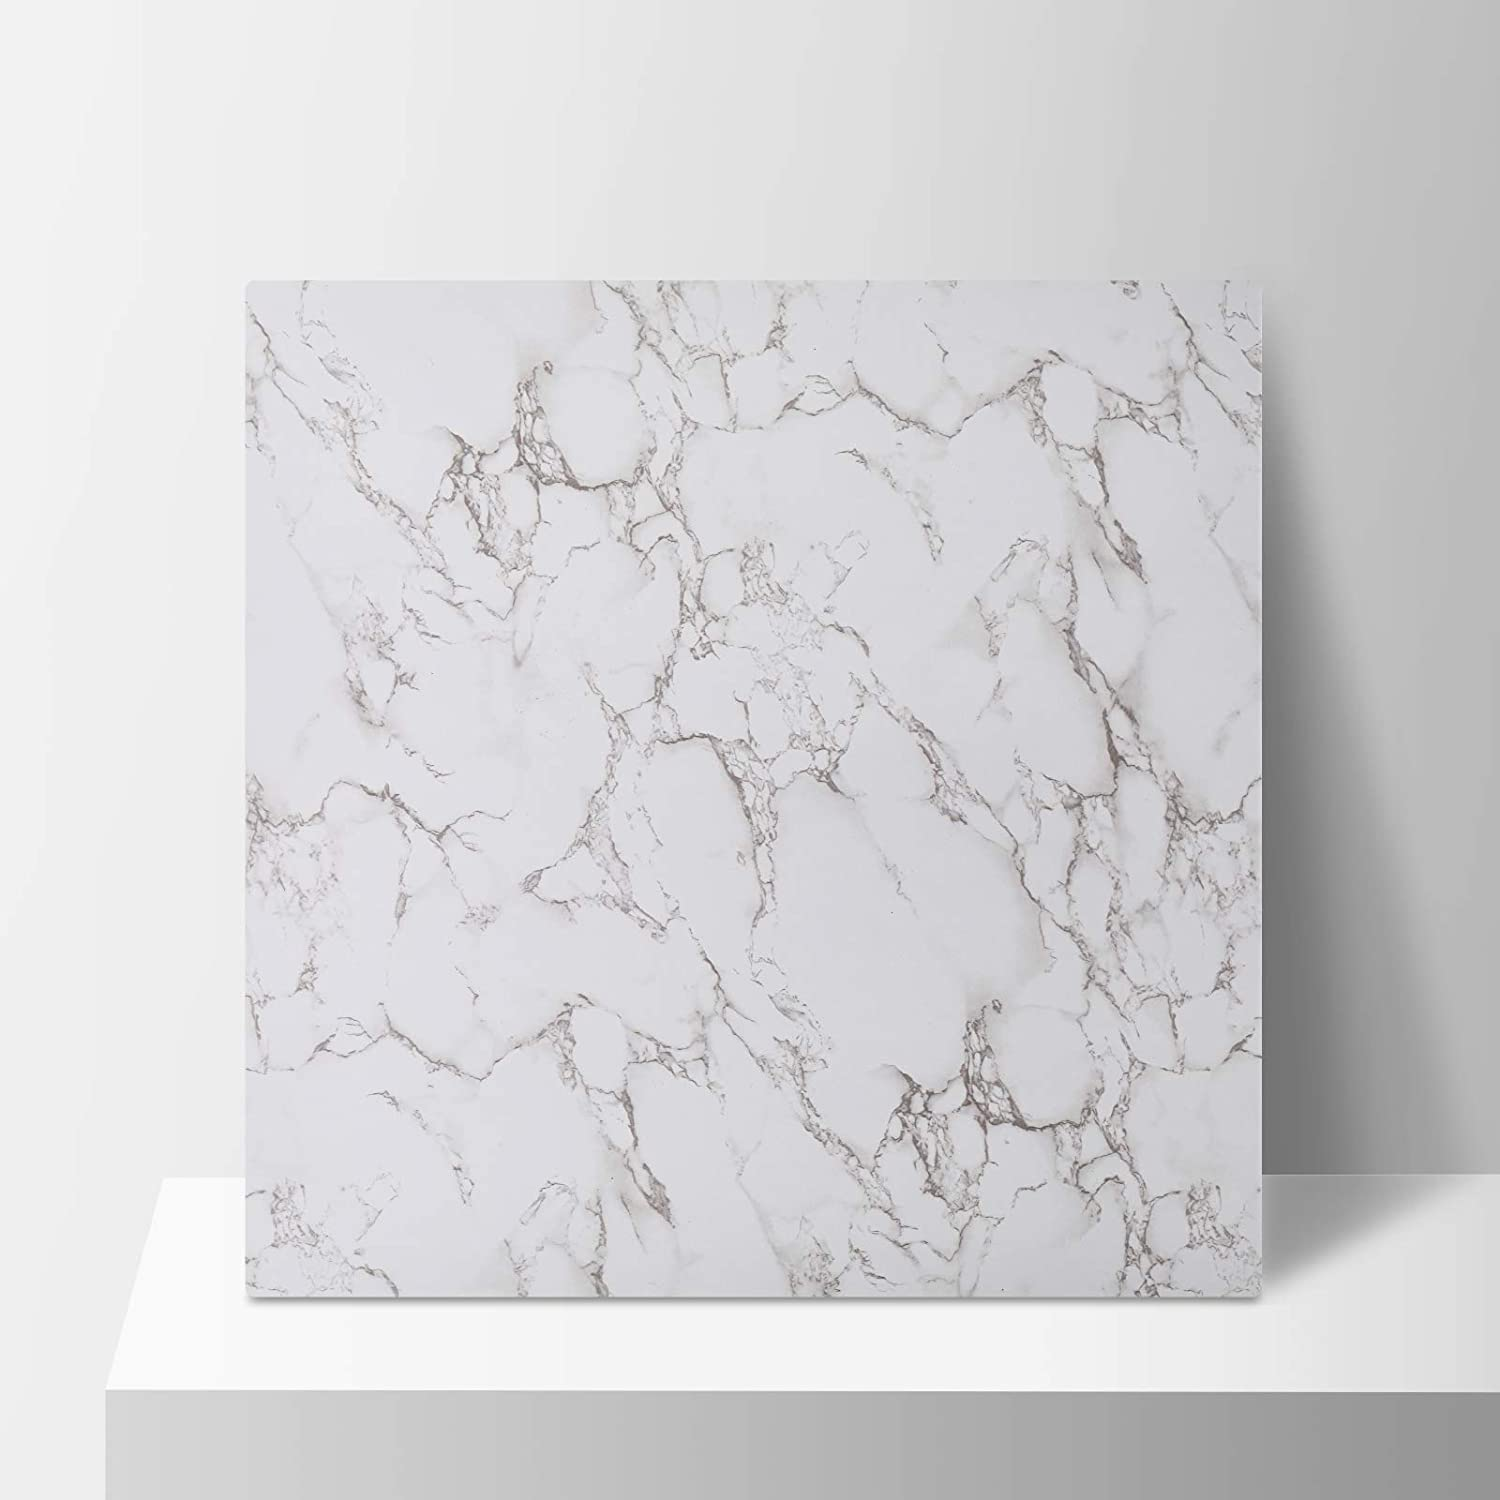 BEIYANG 24x24 Photo Backdrop Unfold 1PCS Photography Backdrop Boards with 2 Bracket Kit Soild Board Waterproof Background for Food Photography White Marble(Only One Included